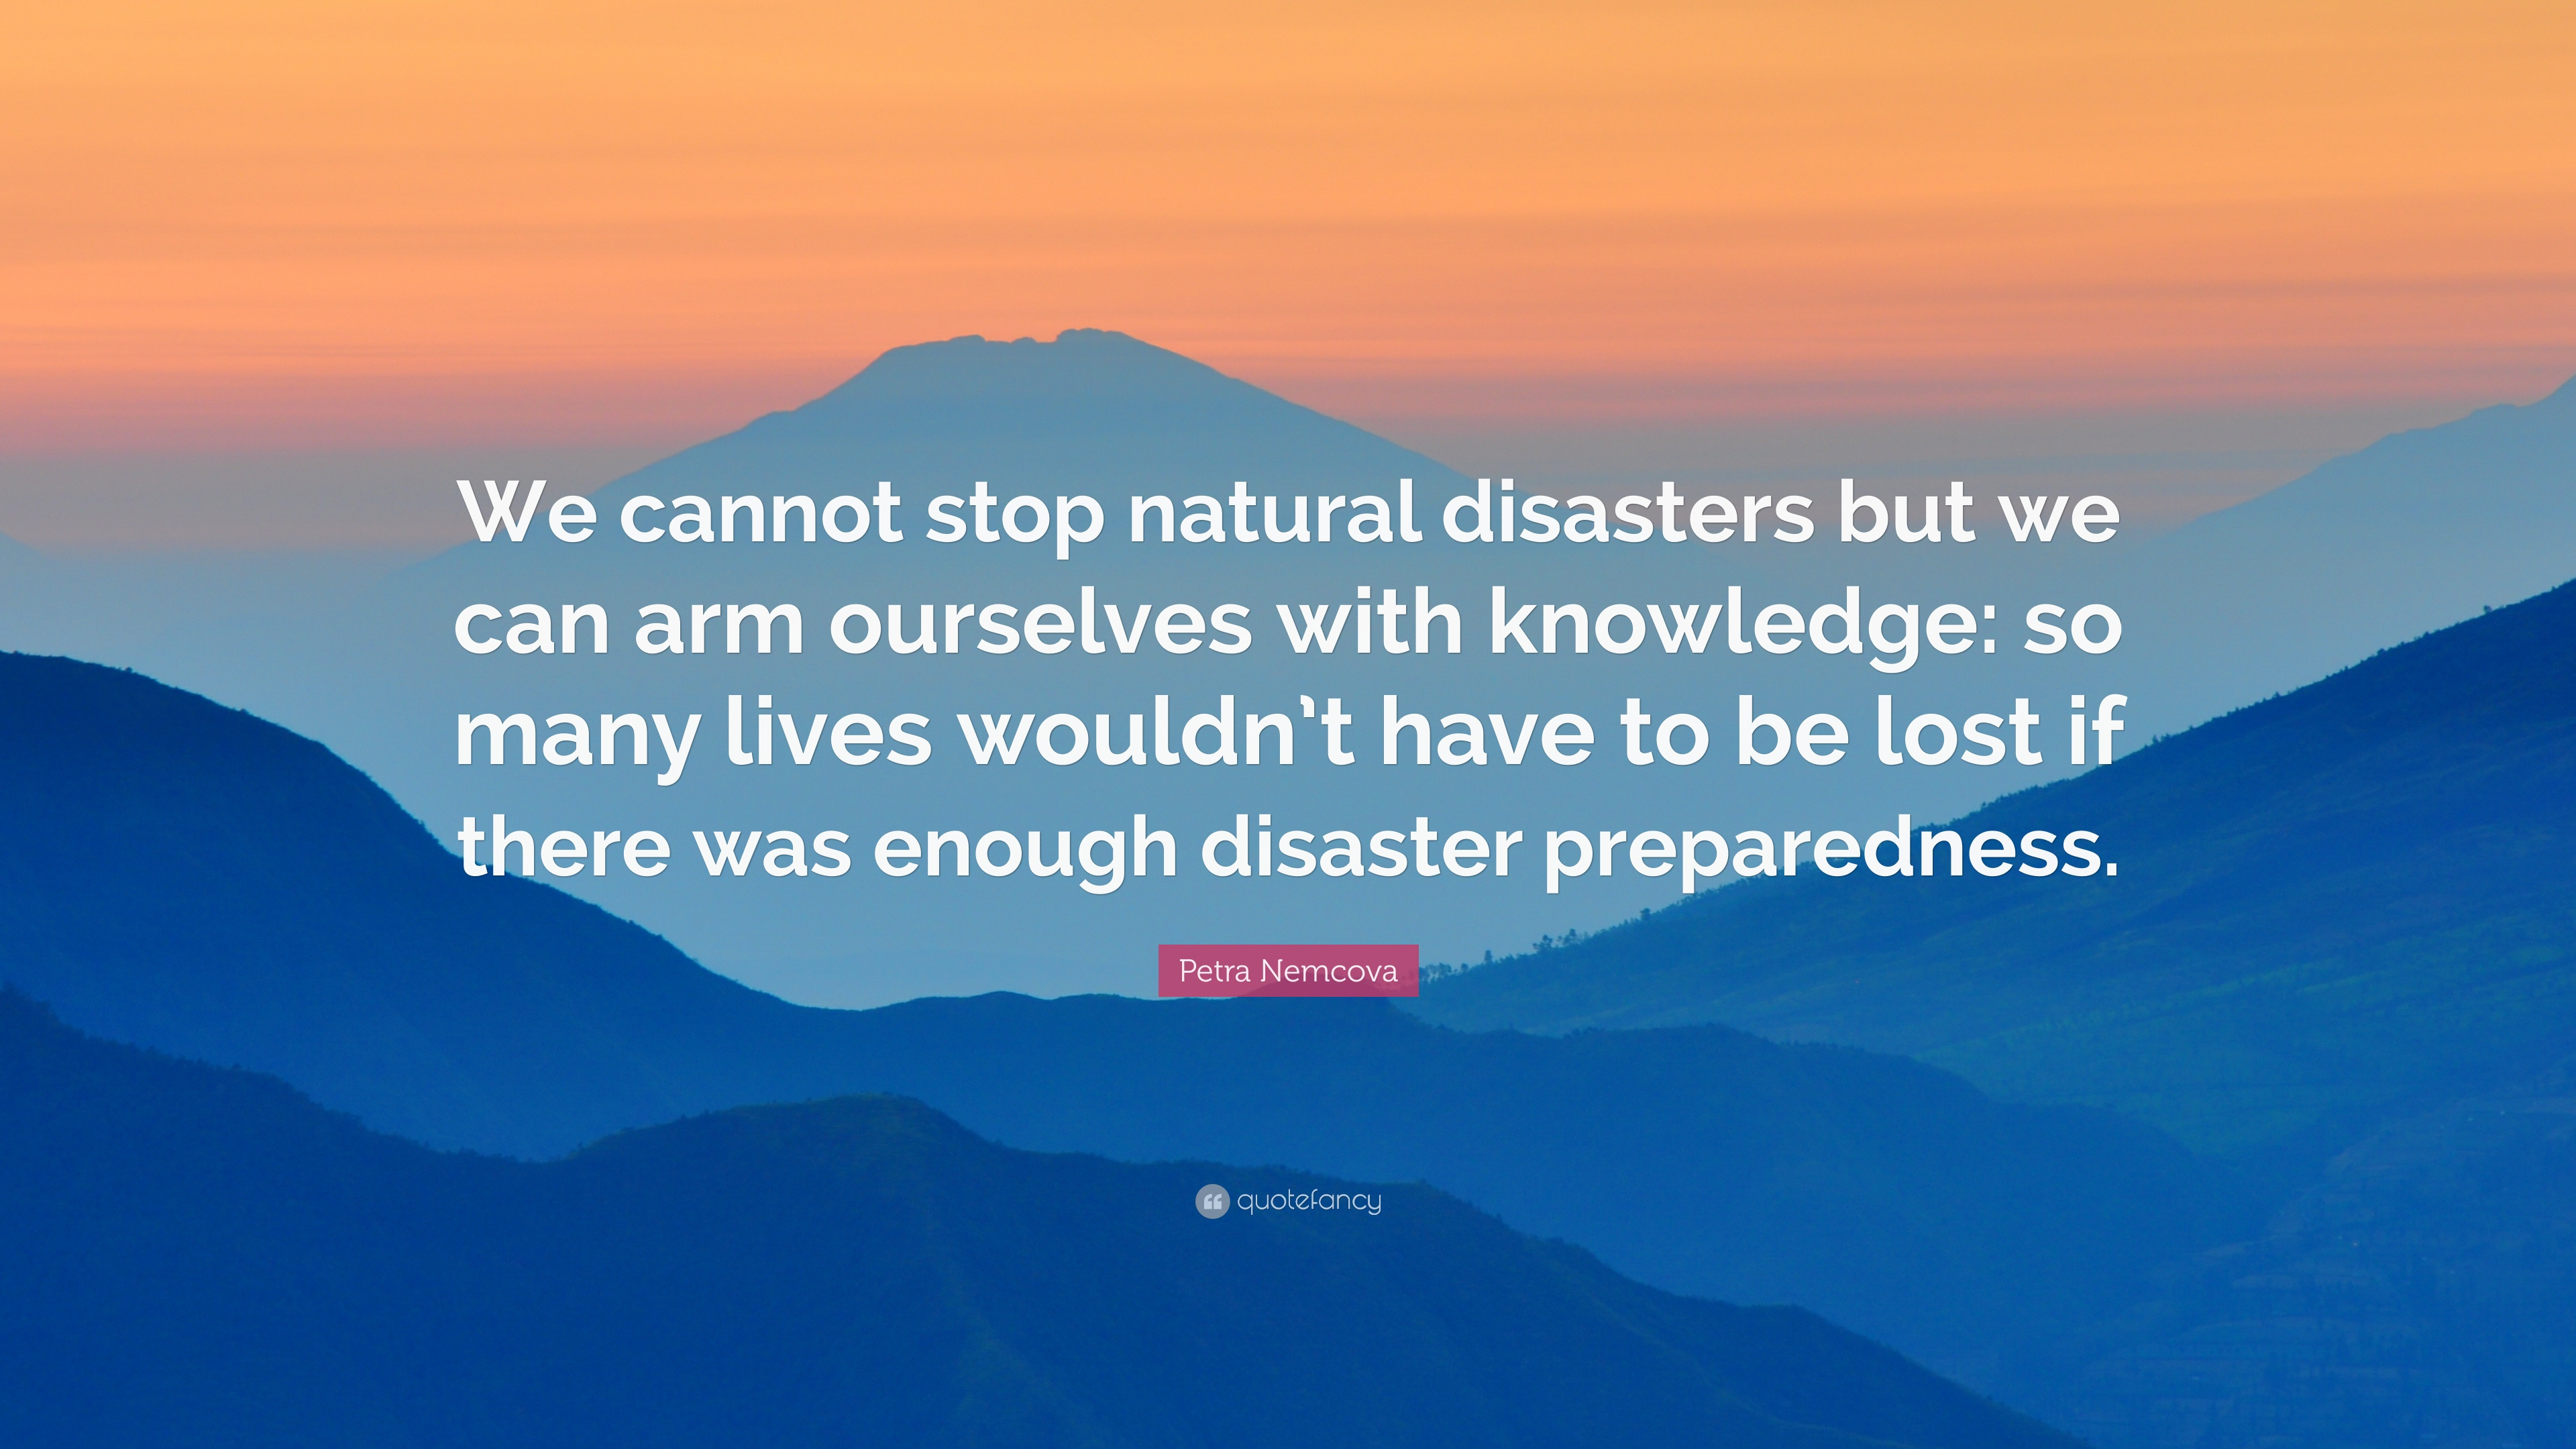 Quotes About Natural Disasters: How Can We Help Stop Natural Disasters